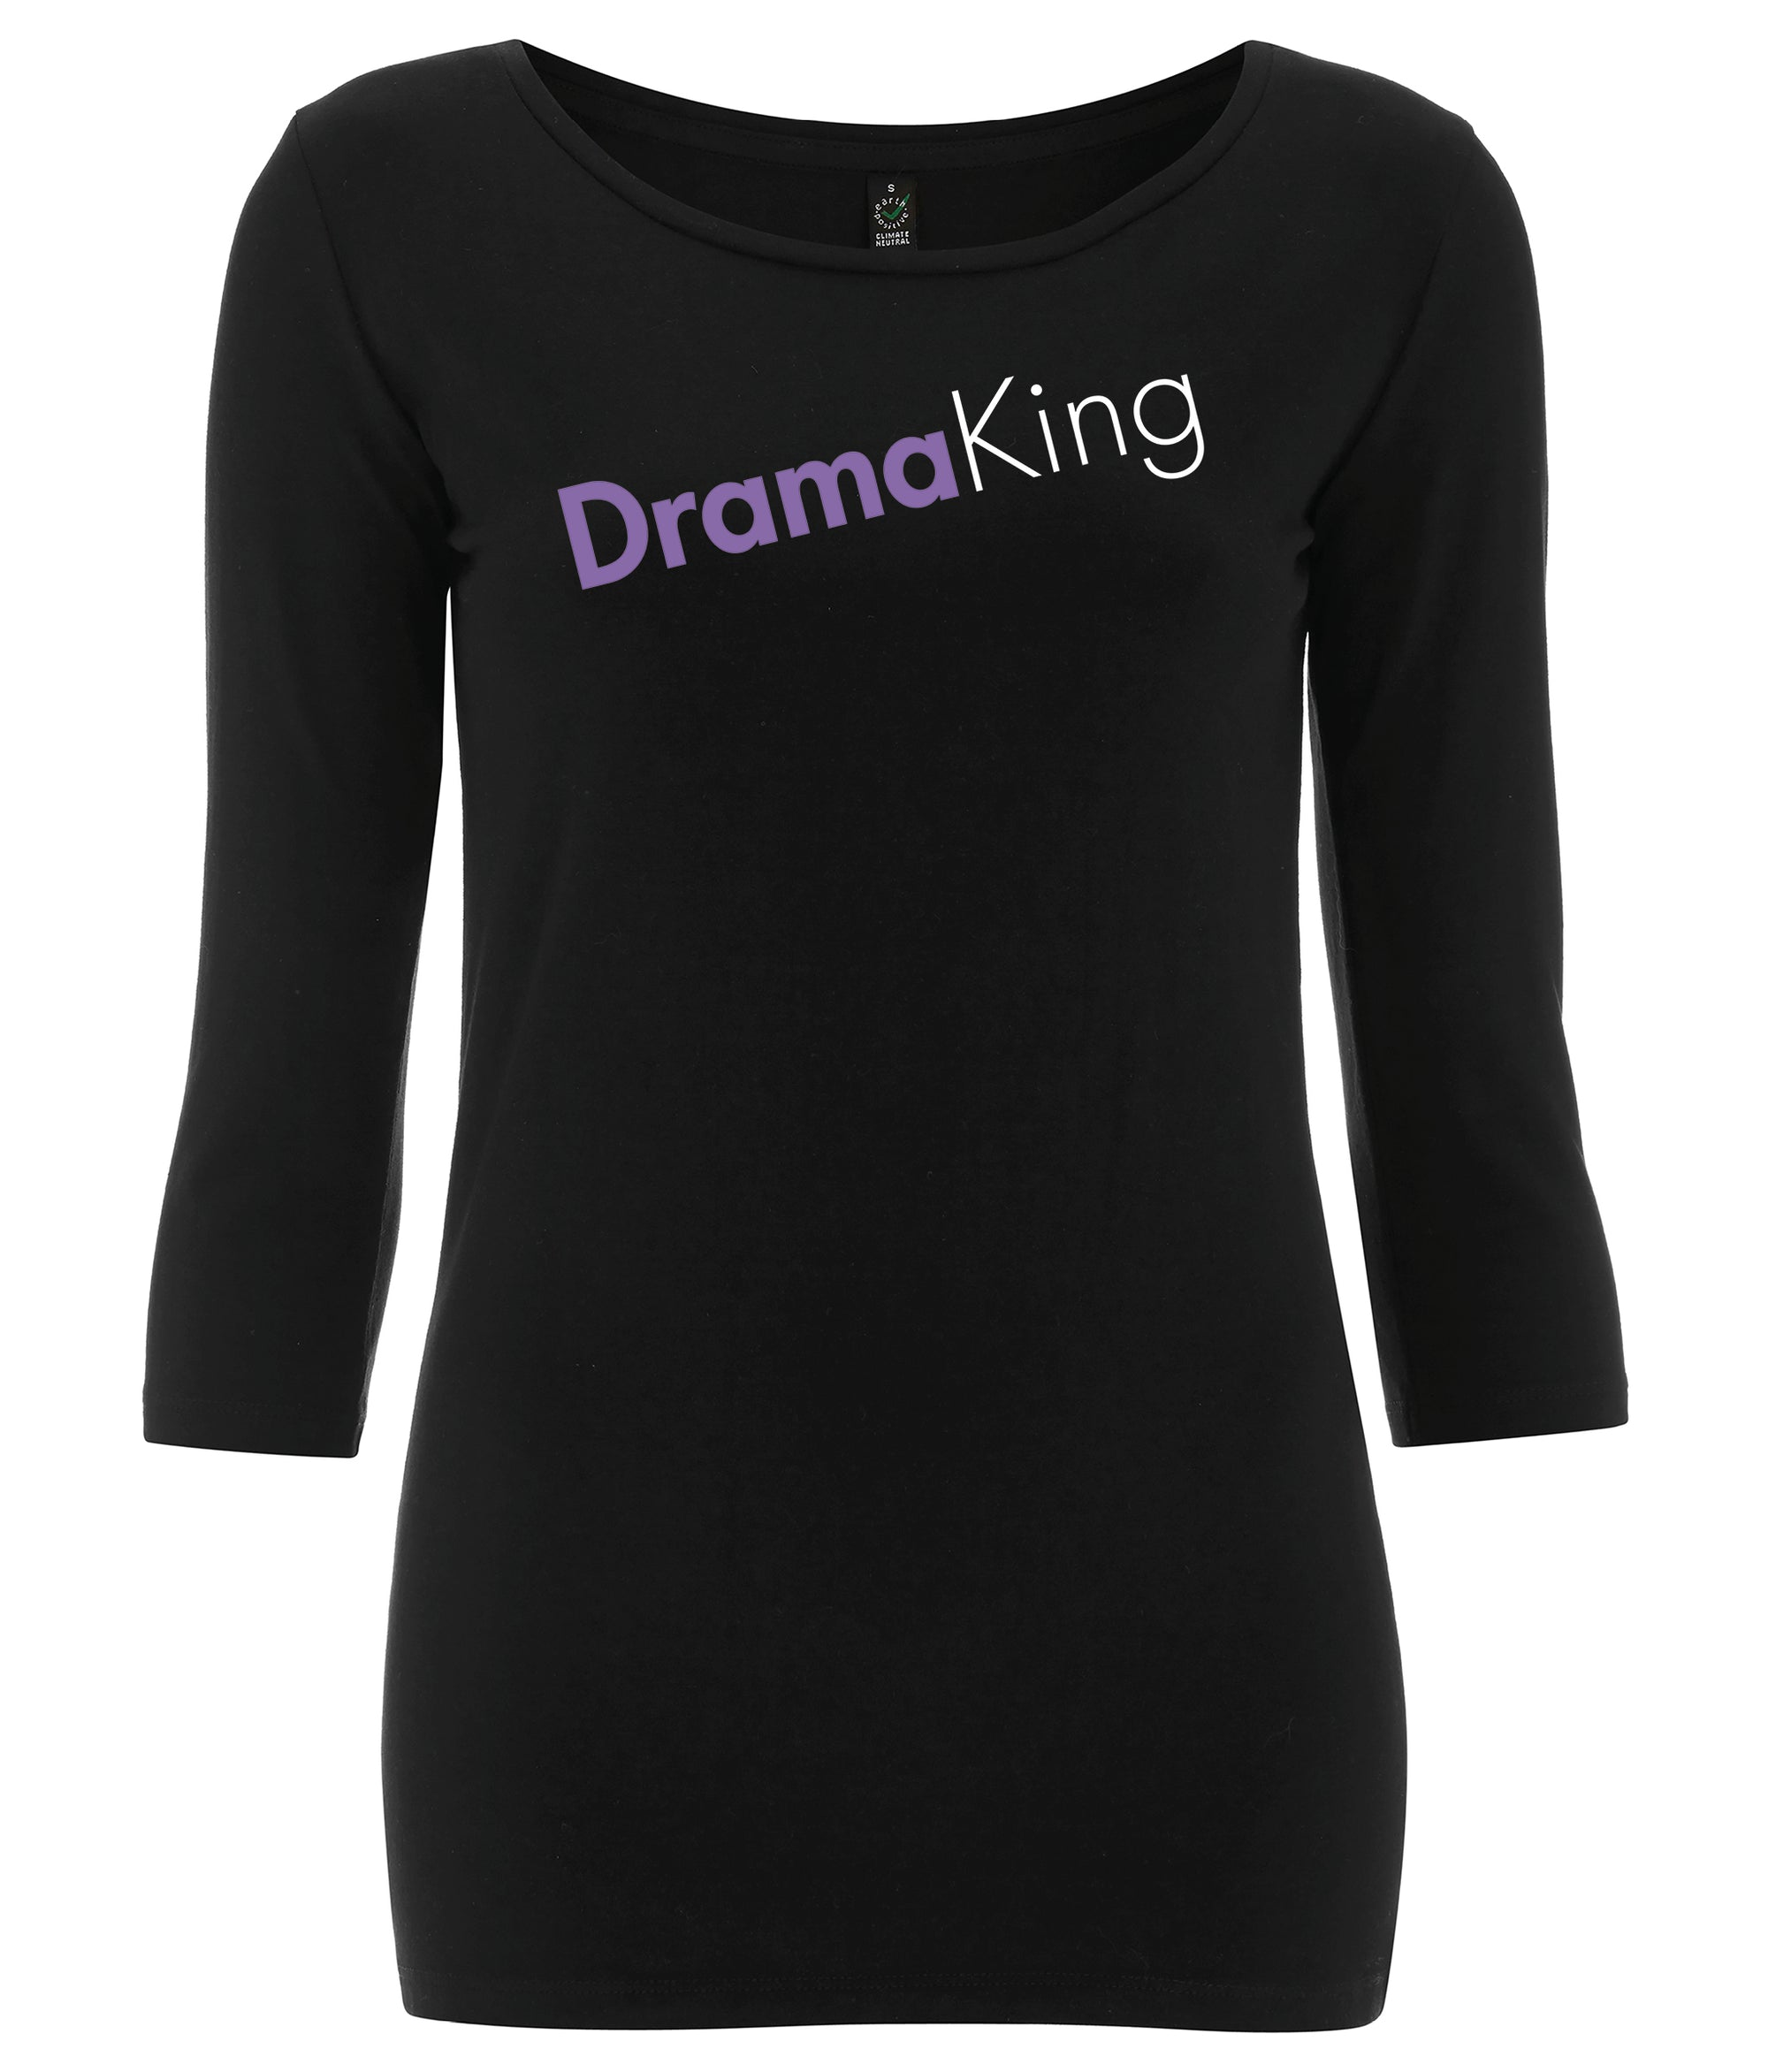 Drama King 3/4 Sleeve Organic Feminist T Shirt Black